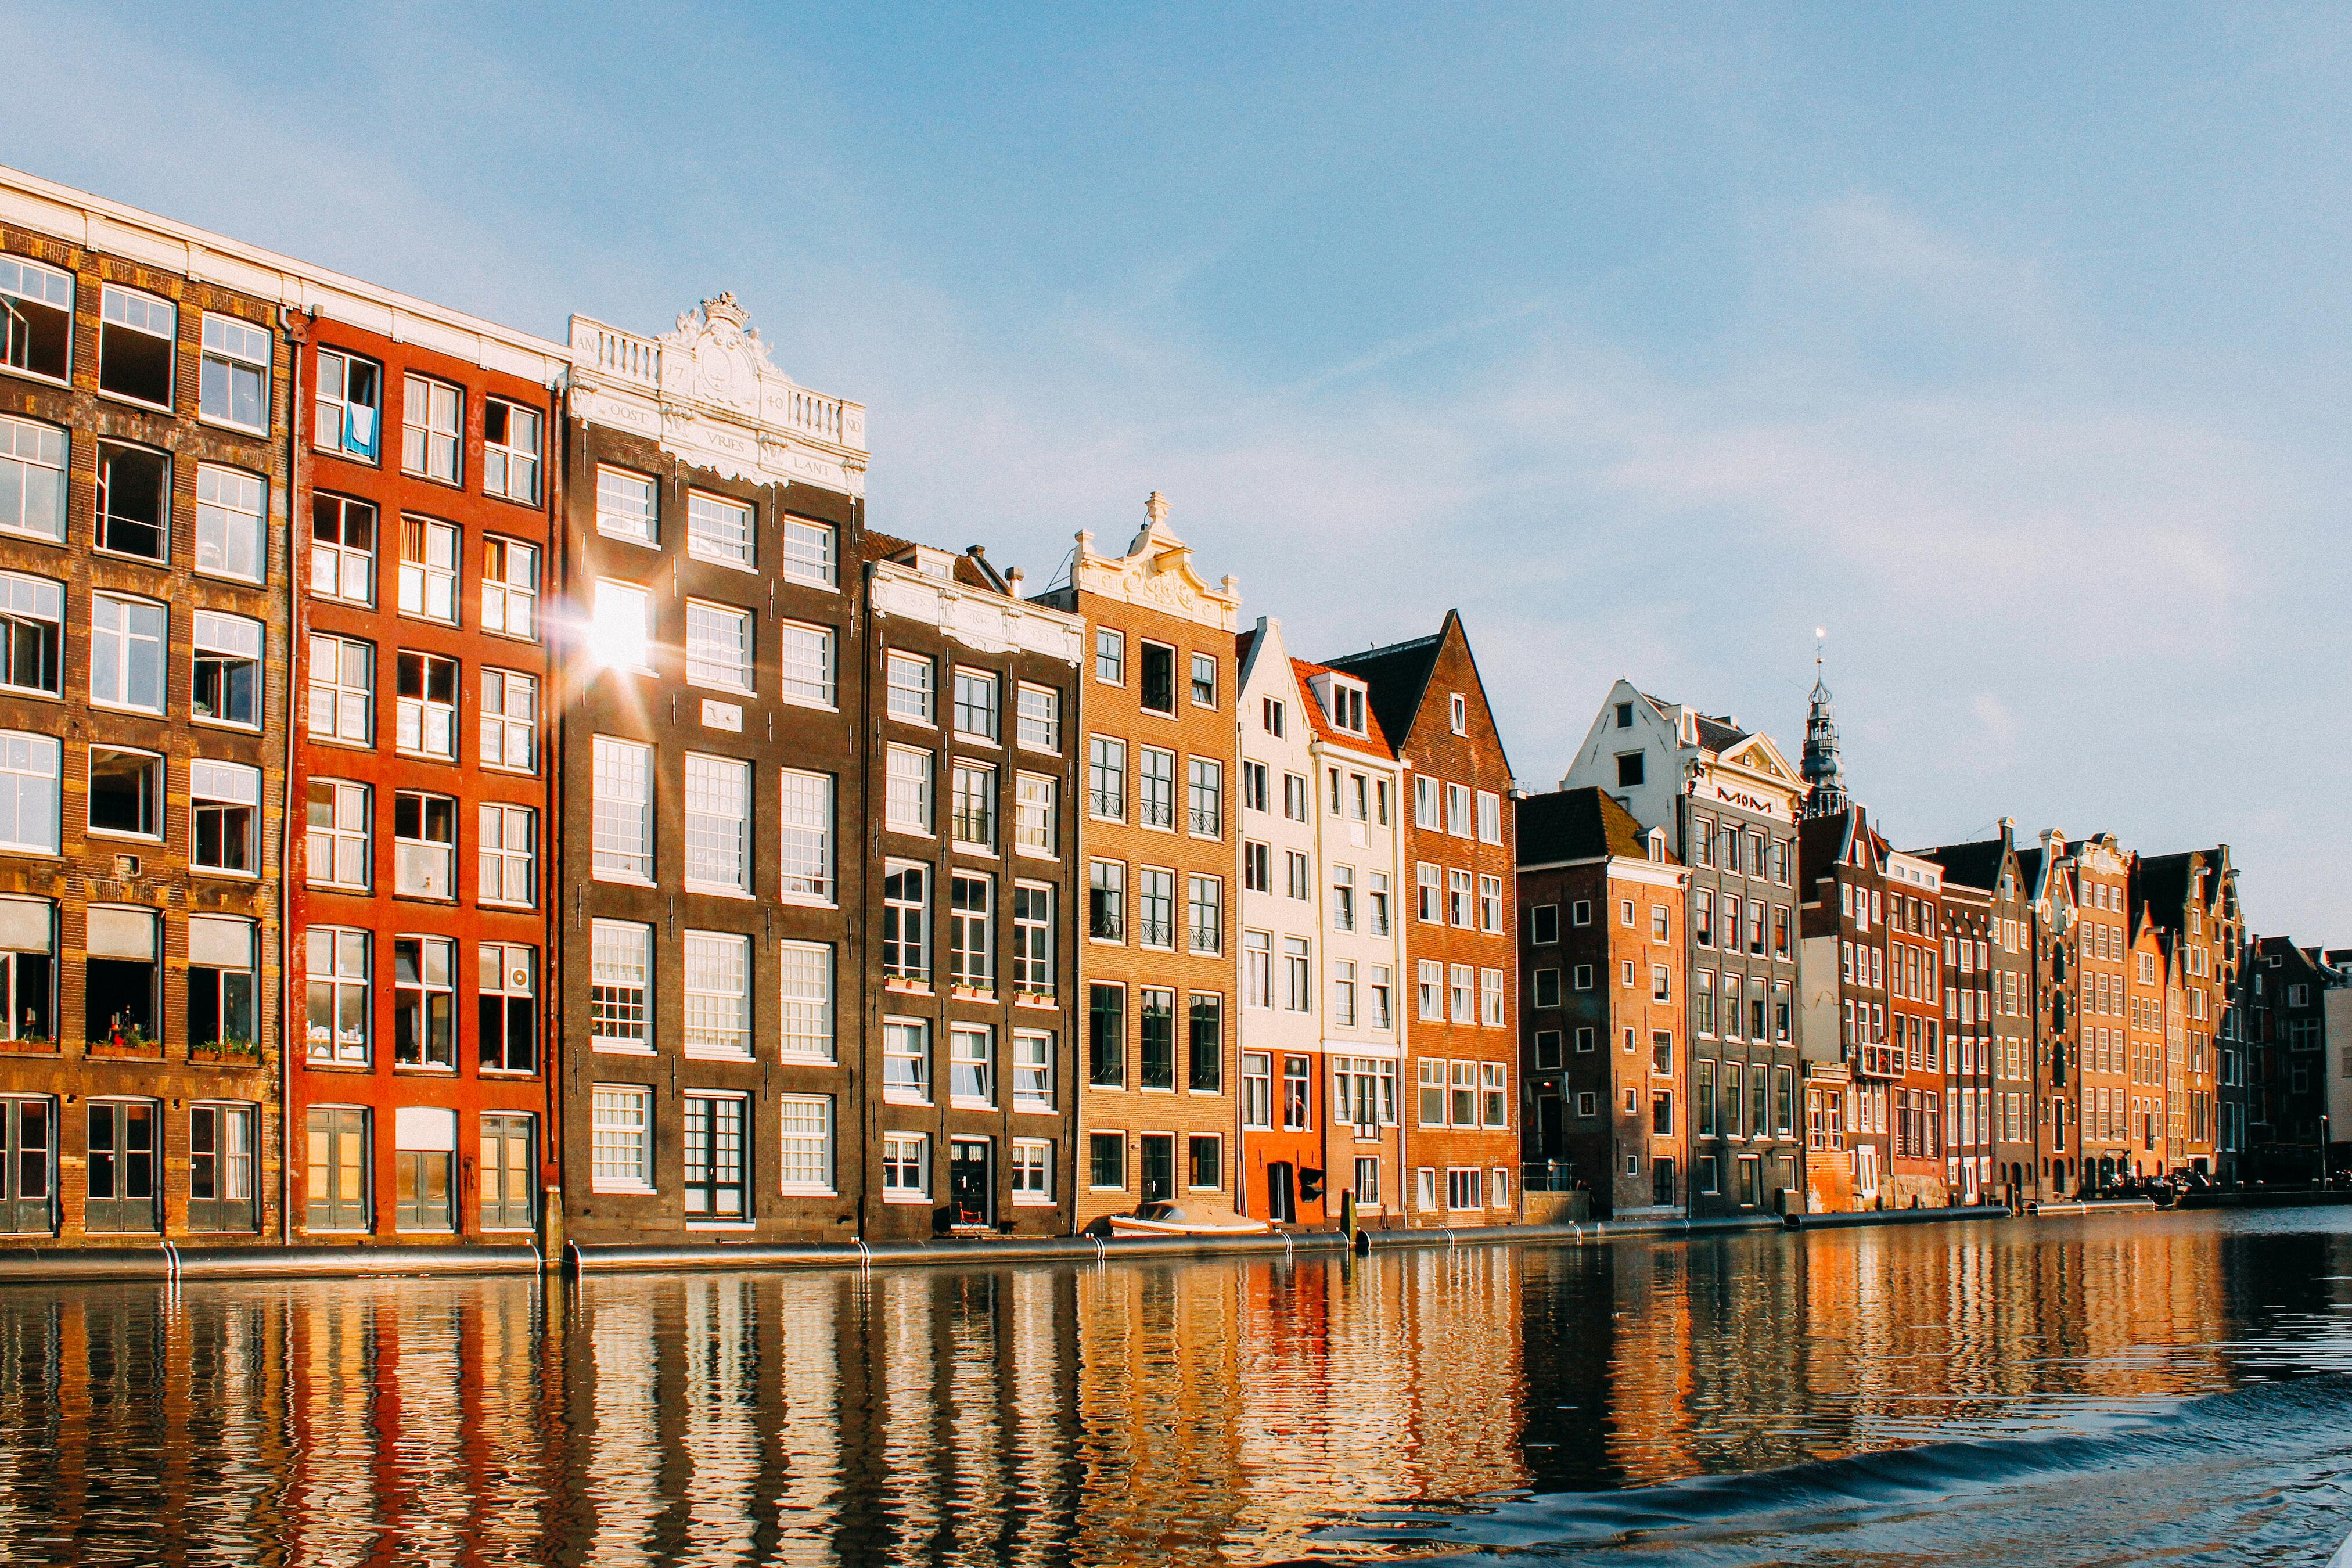 view of houses in amsterdam from the canal